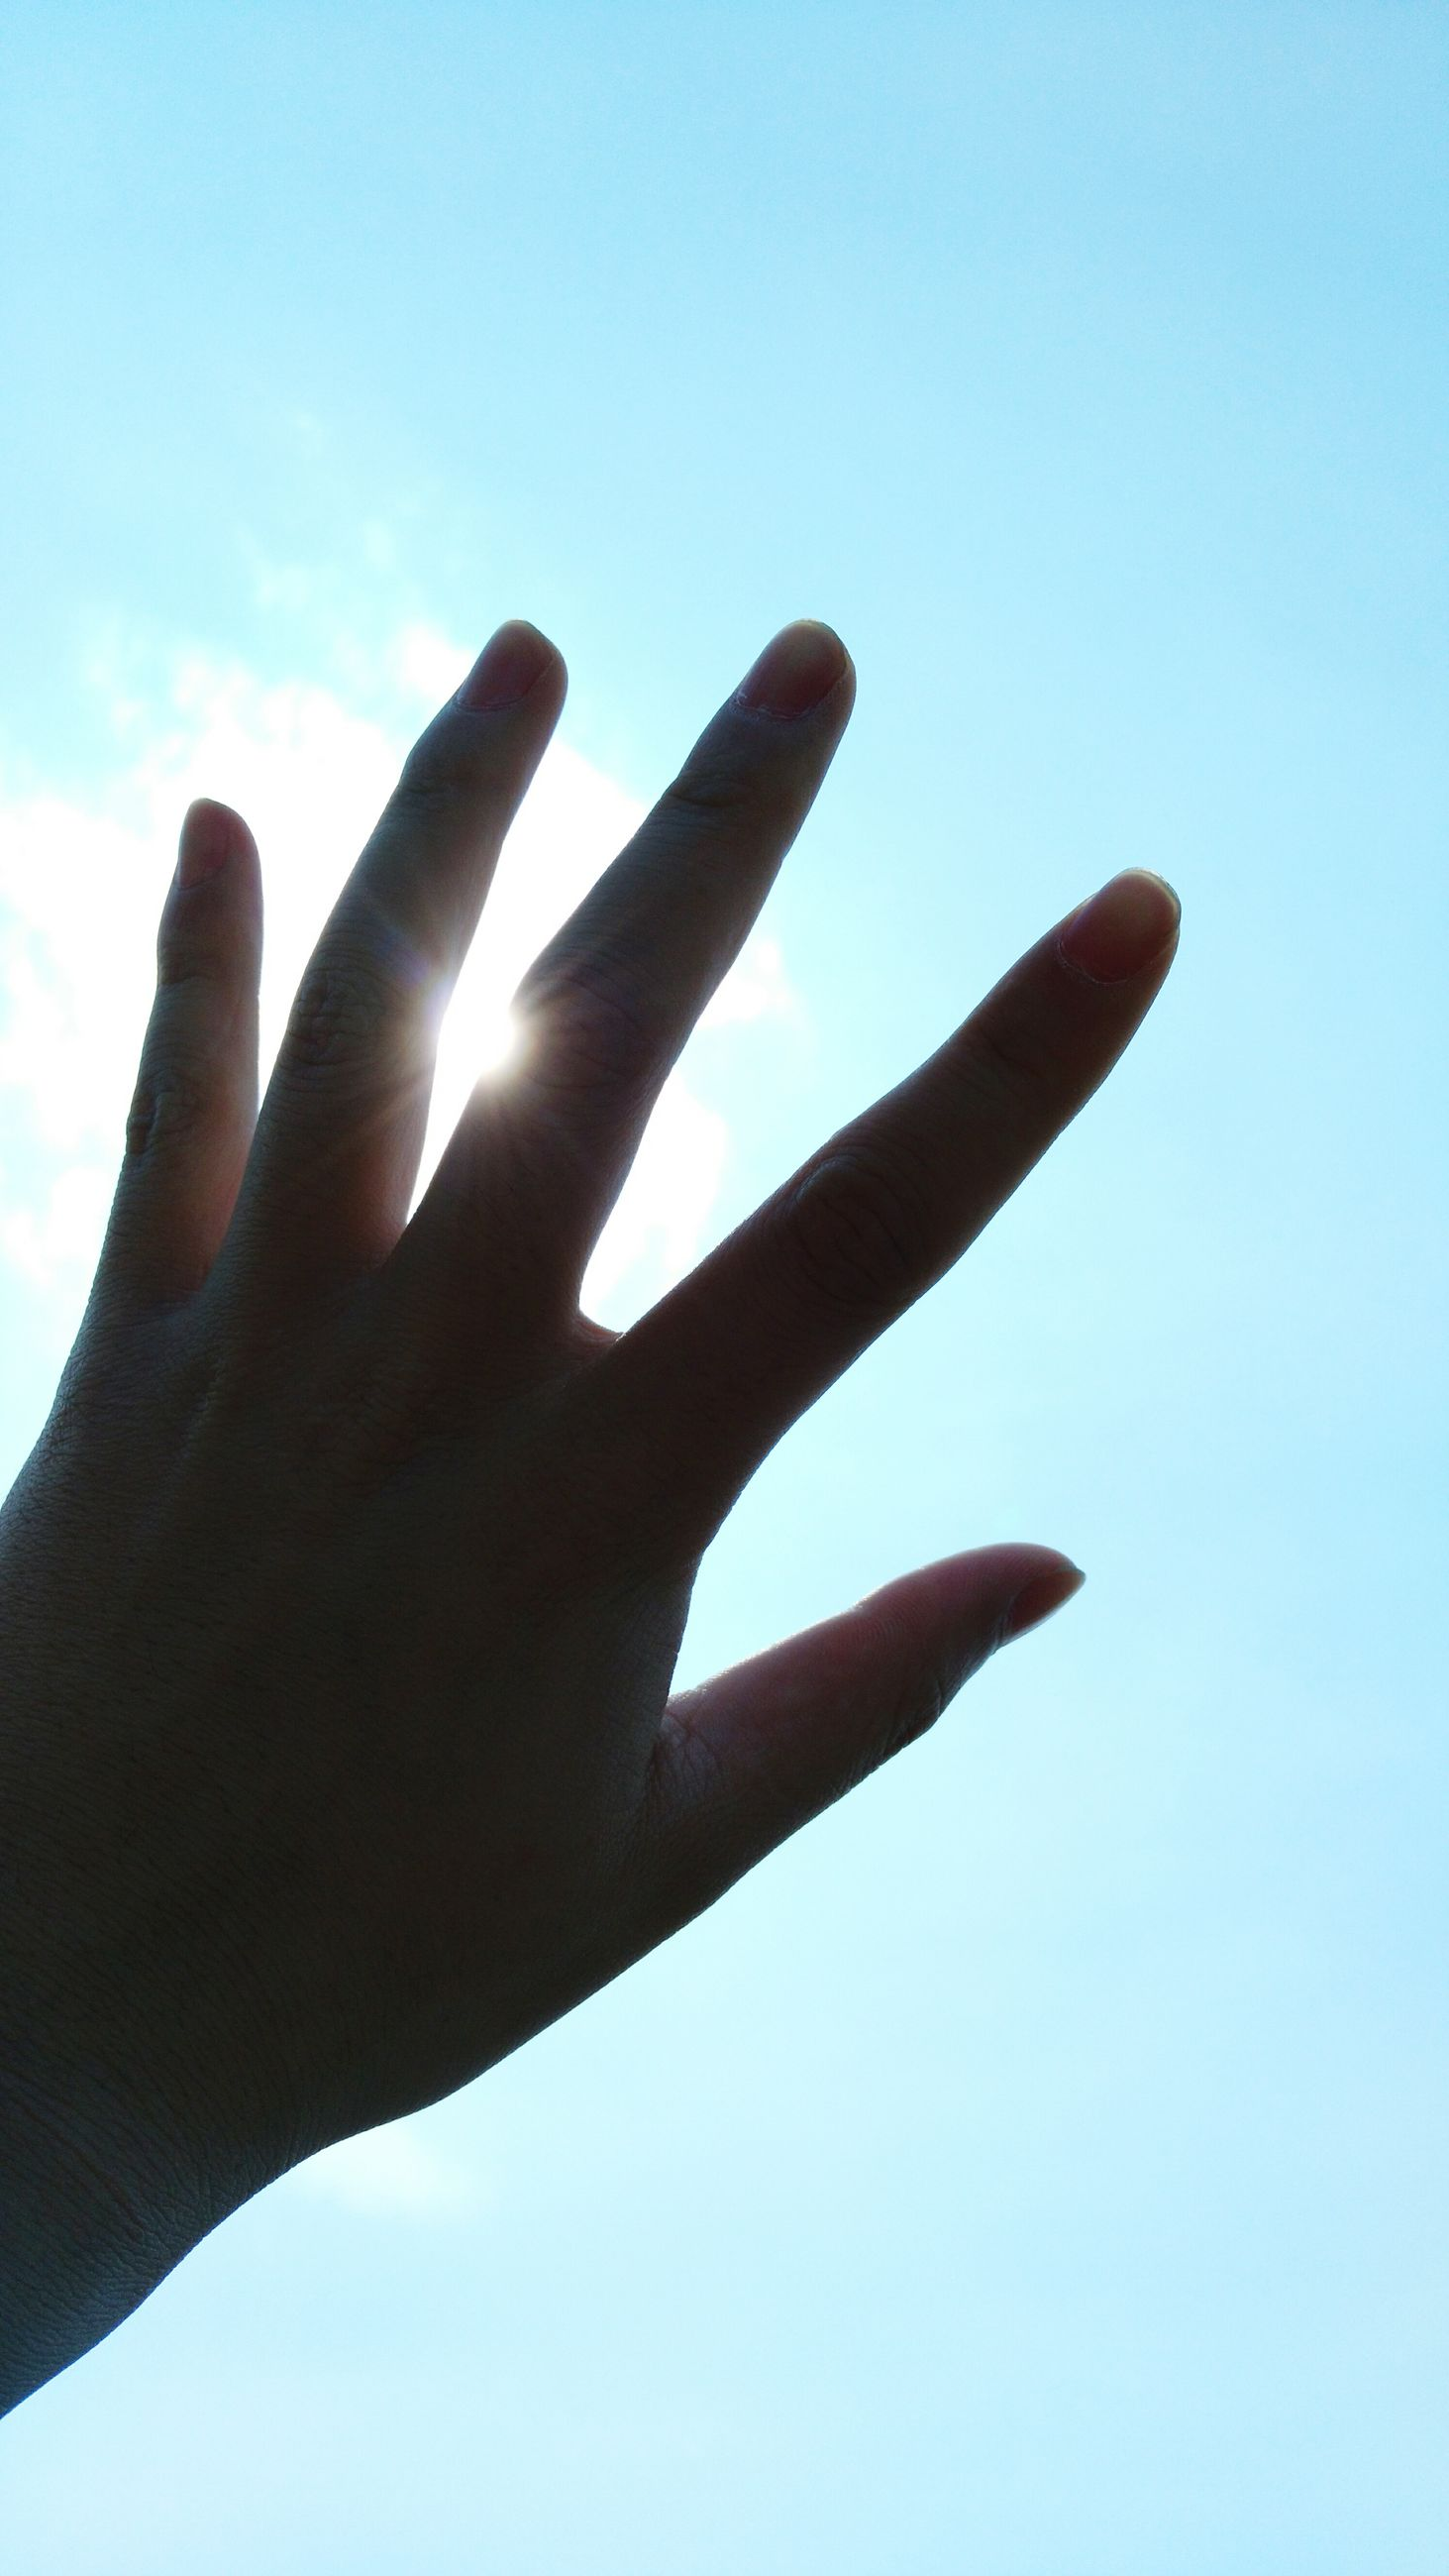 person, part of, cropped, low angle view, human finger, clear sky, sky, close-up, holding, unrecognizable person, blue, copy space, silhouette, outdoors, day, personal perspective, showing